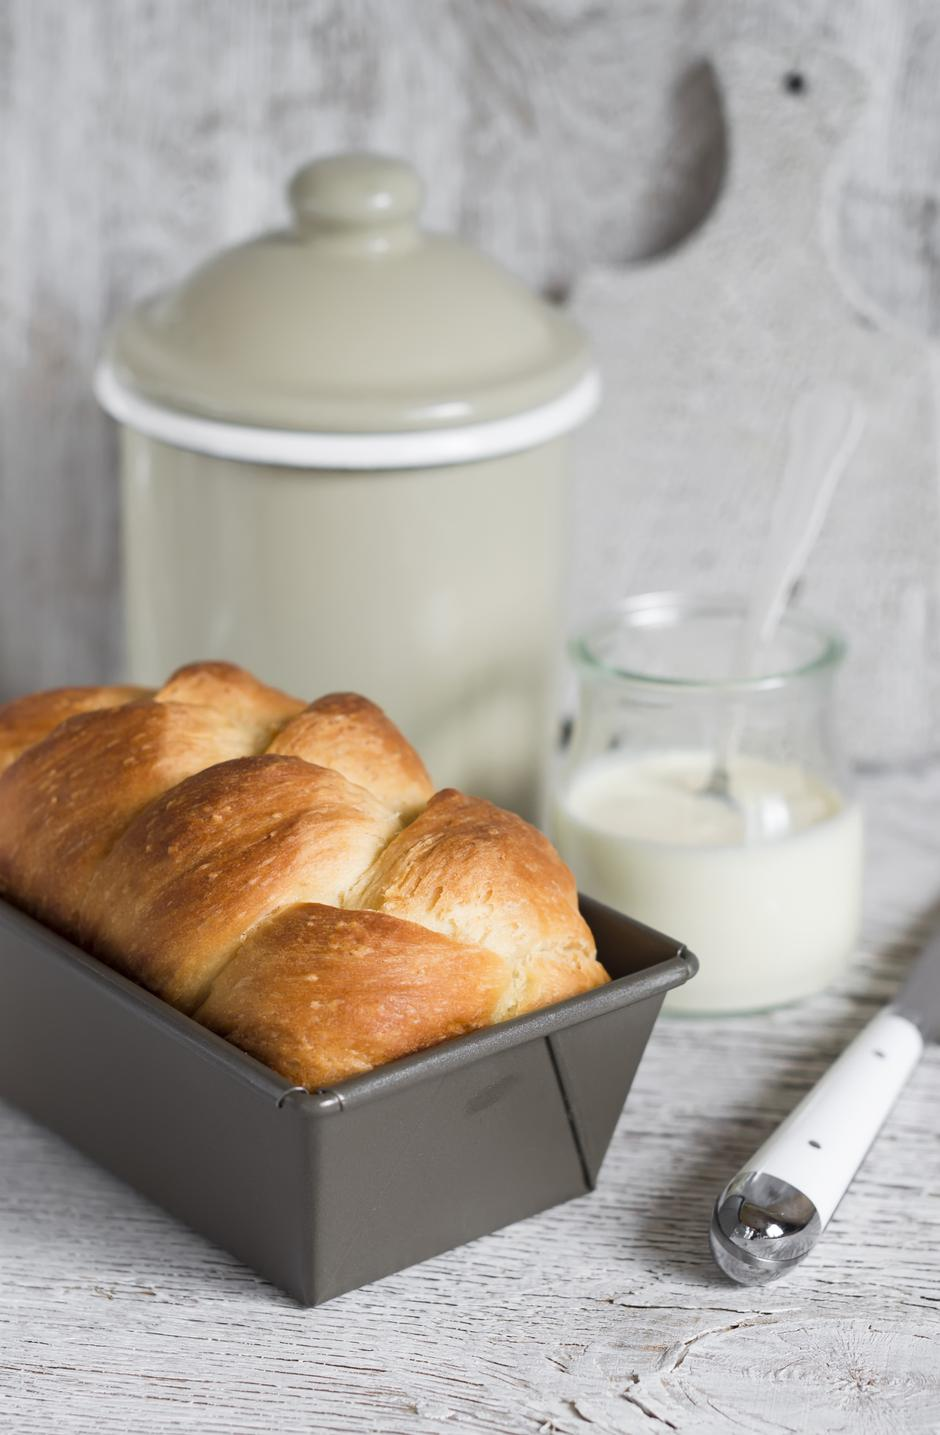 brioche kruh | Author: Thinkstock